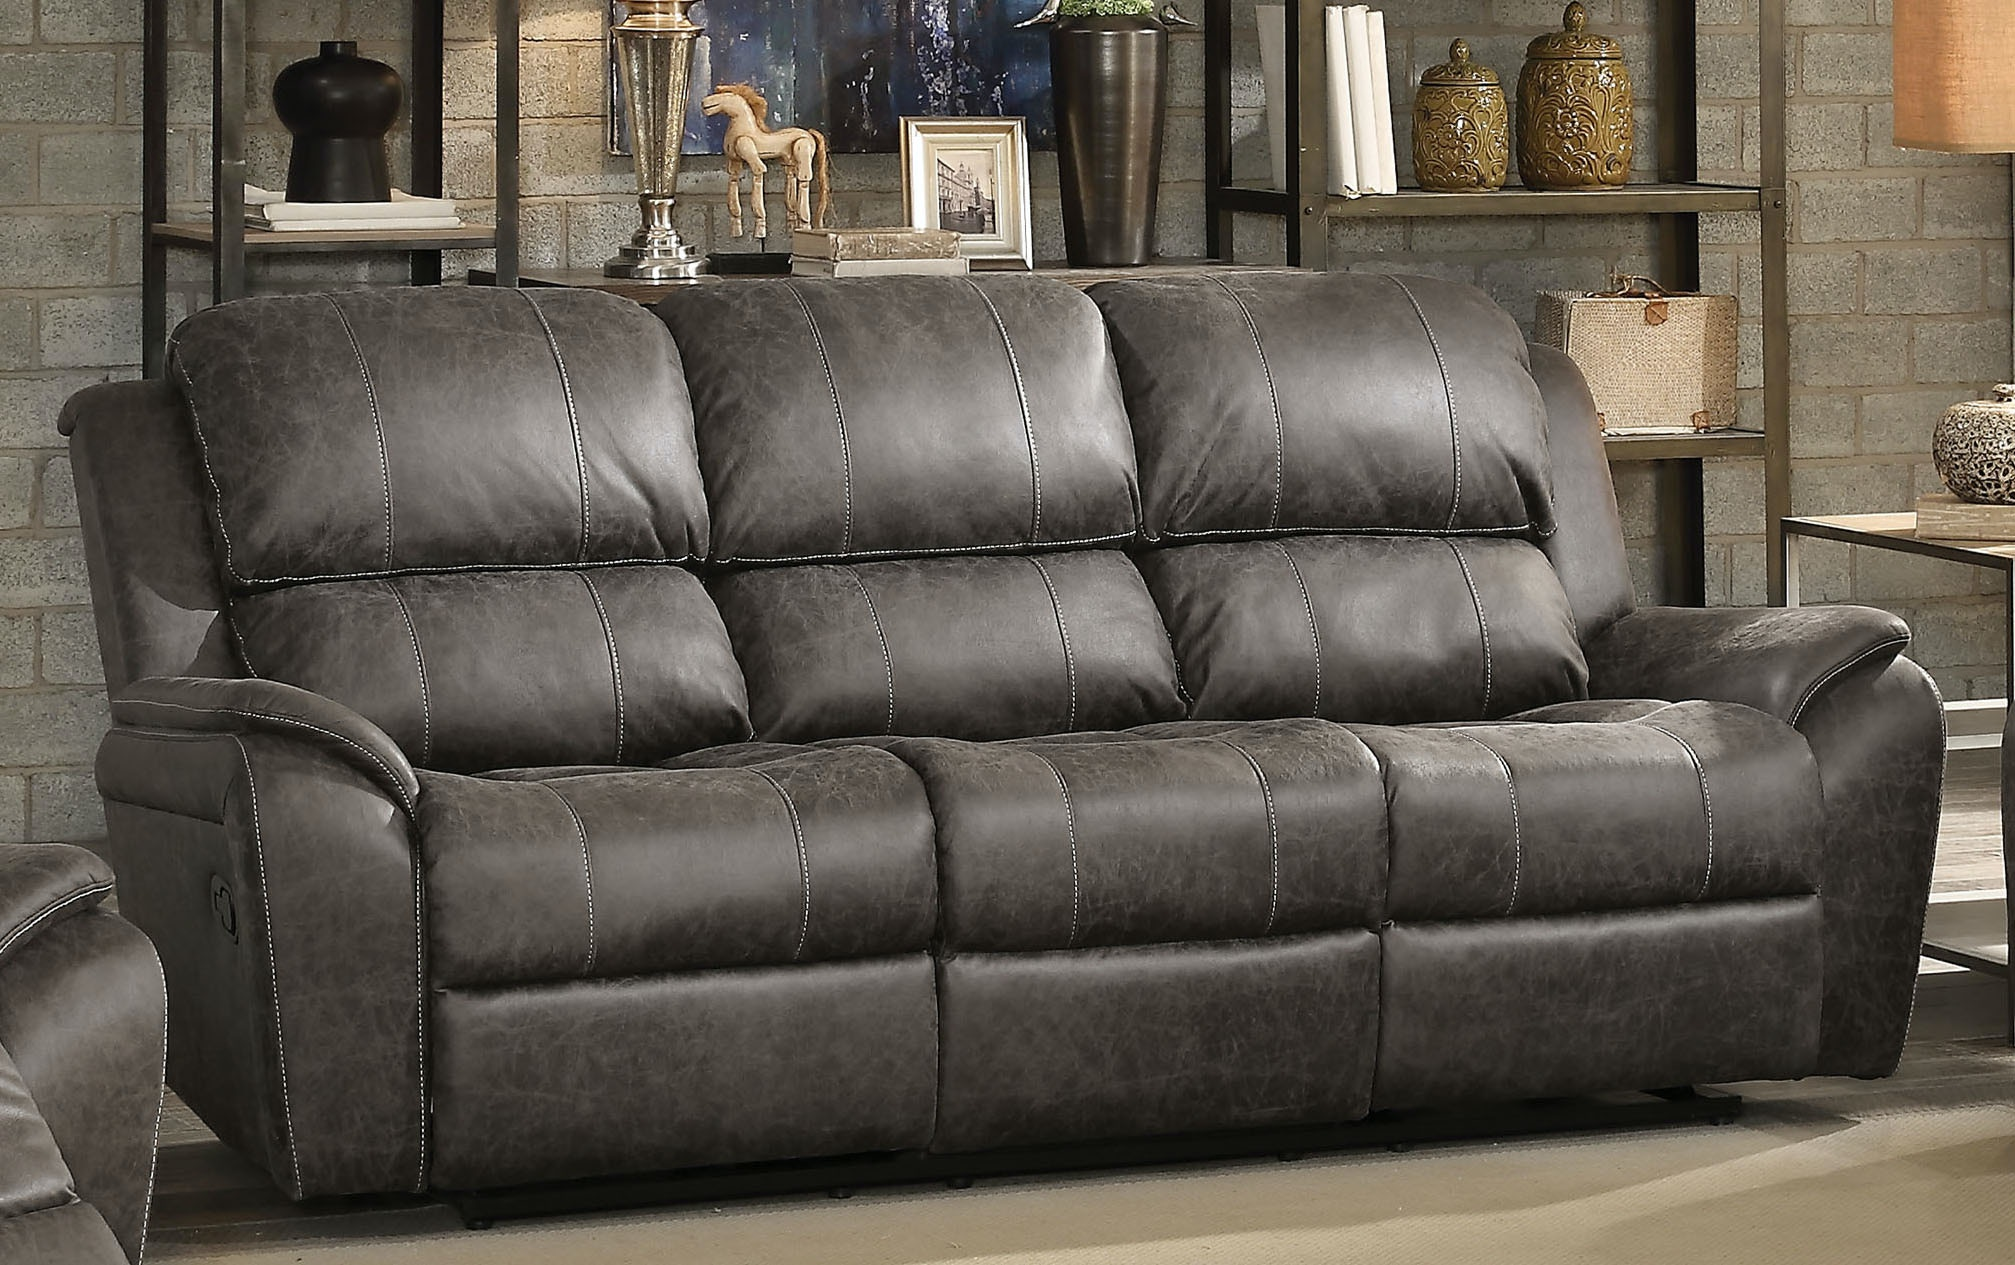 Acme Furniture Barnaby Motion Sofa 52880